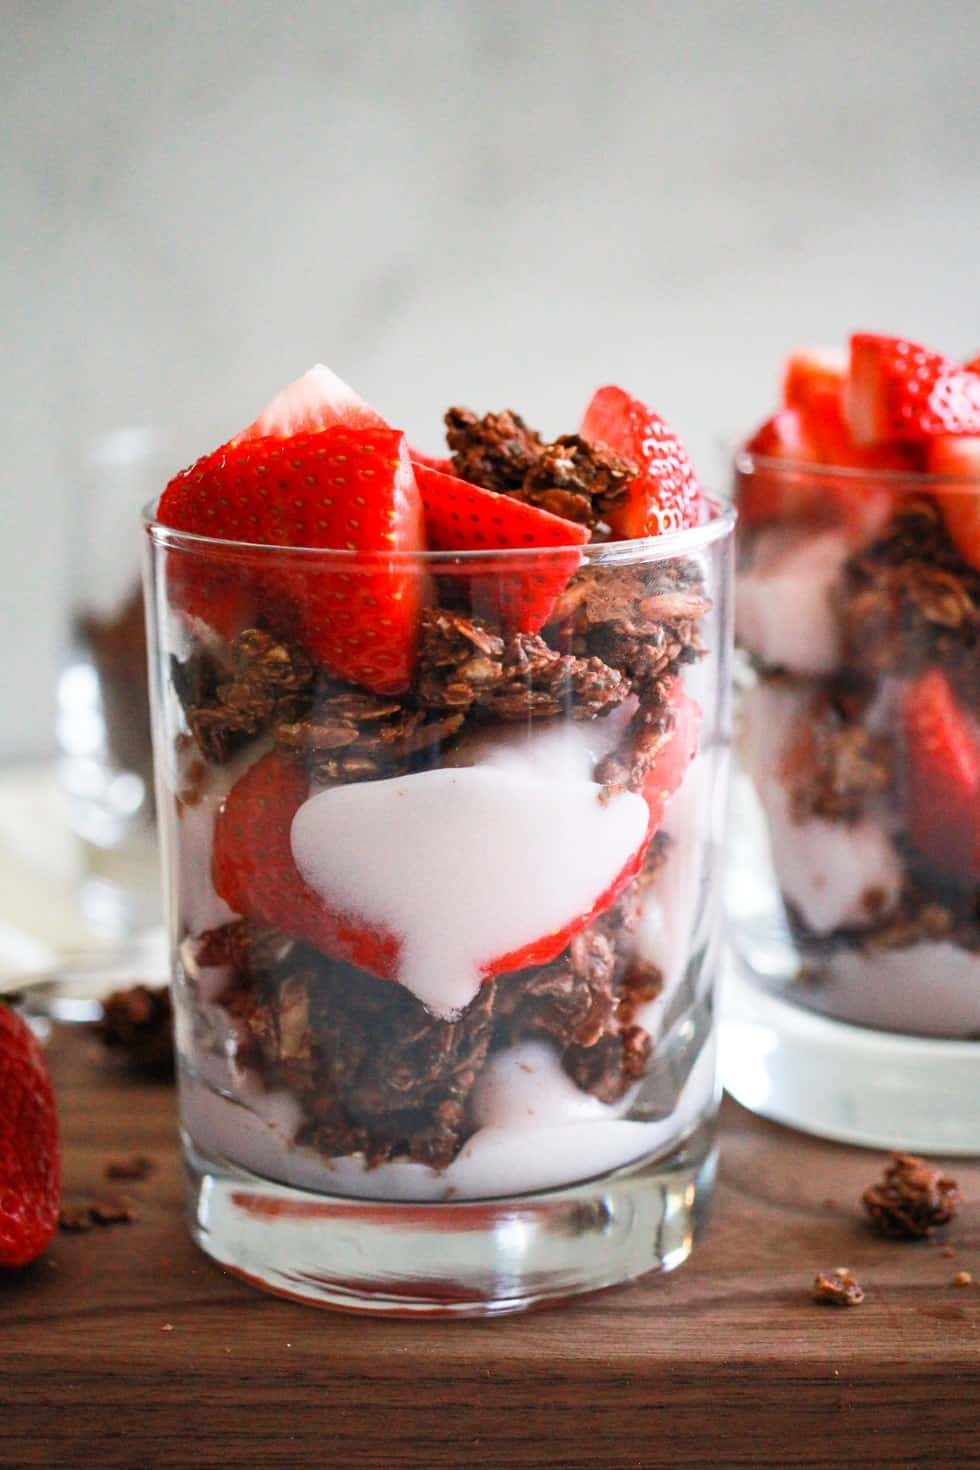 Strawberry Yogurt Parfait in a glass with granola.